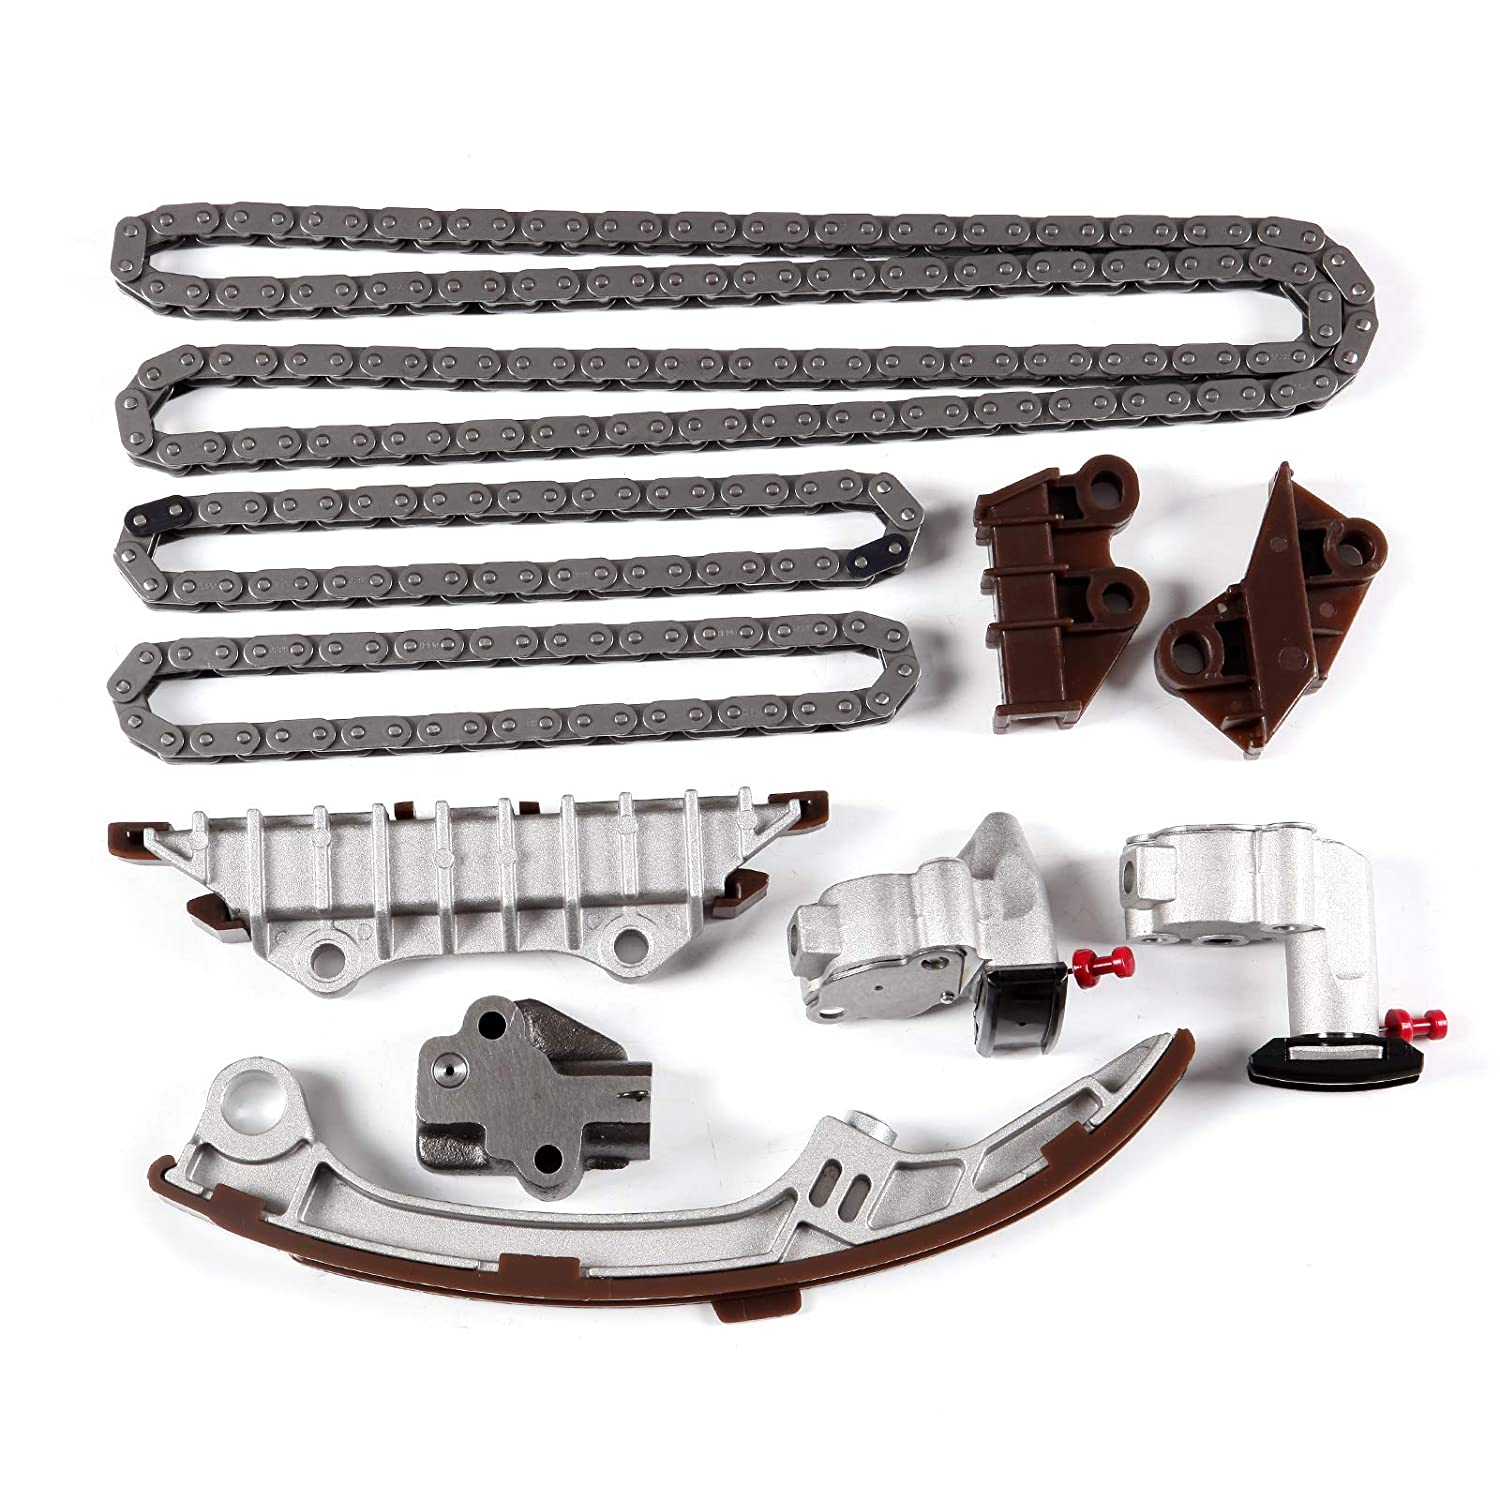 SCITOO TK632 Timing Chain Kit Tensioner Guide Rail fits for 95-01 Nissan Maxima Infiniti I30 DOHC VQ30DE